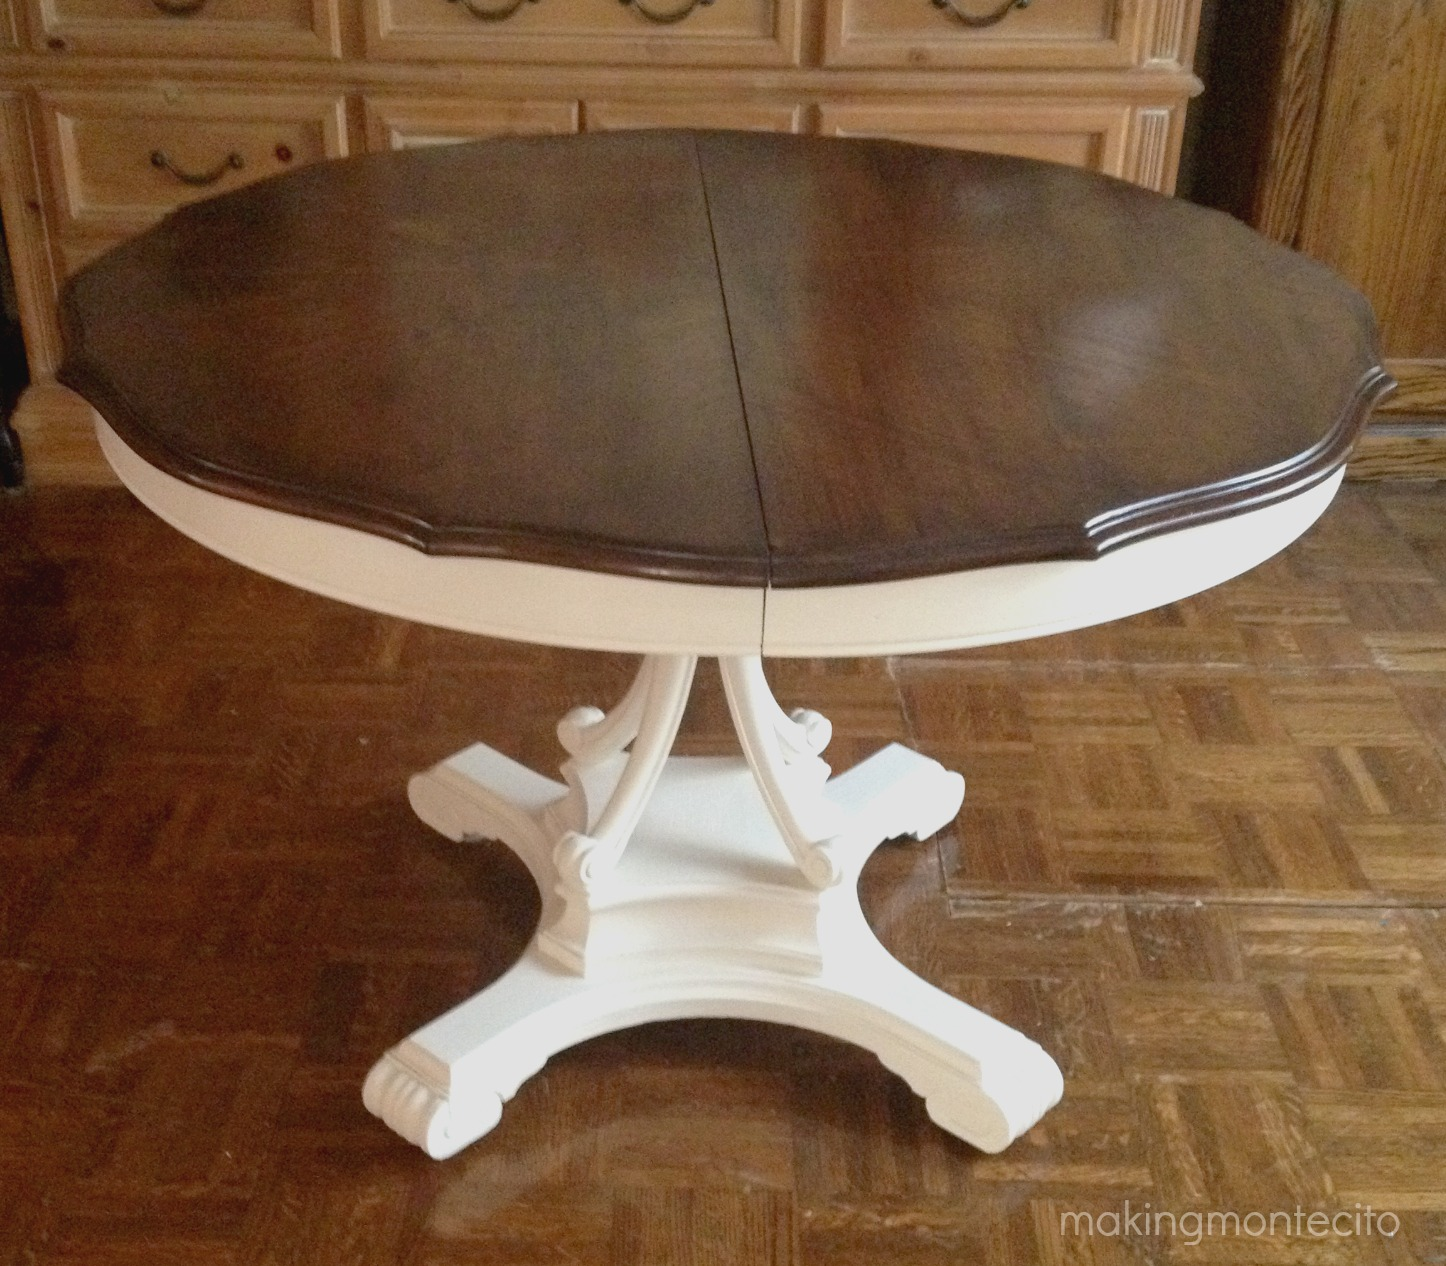 Vintage dining table updated - making montecito 5